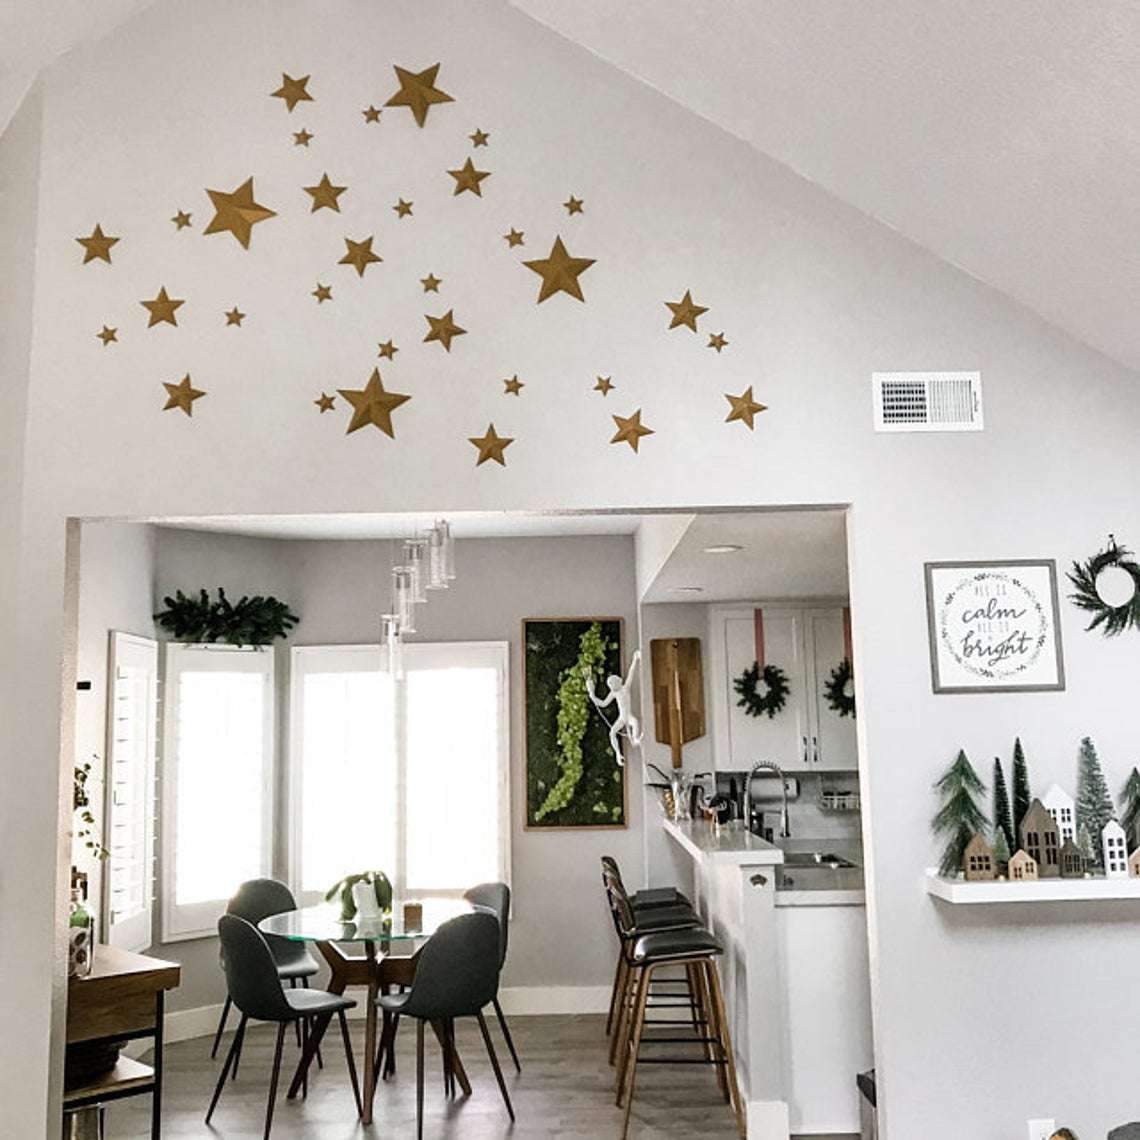 Create Your Own Star Wall